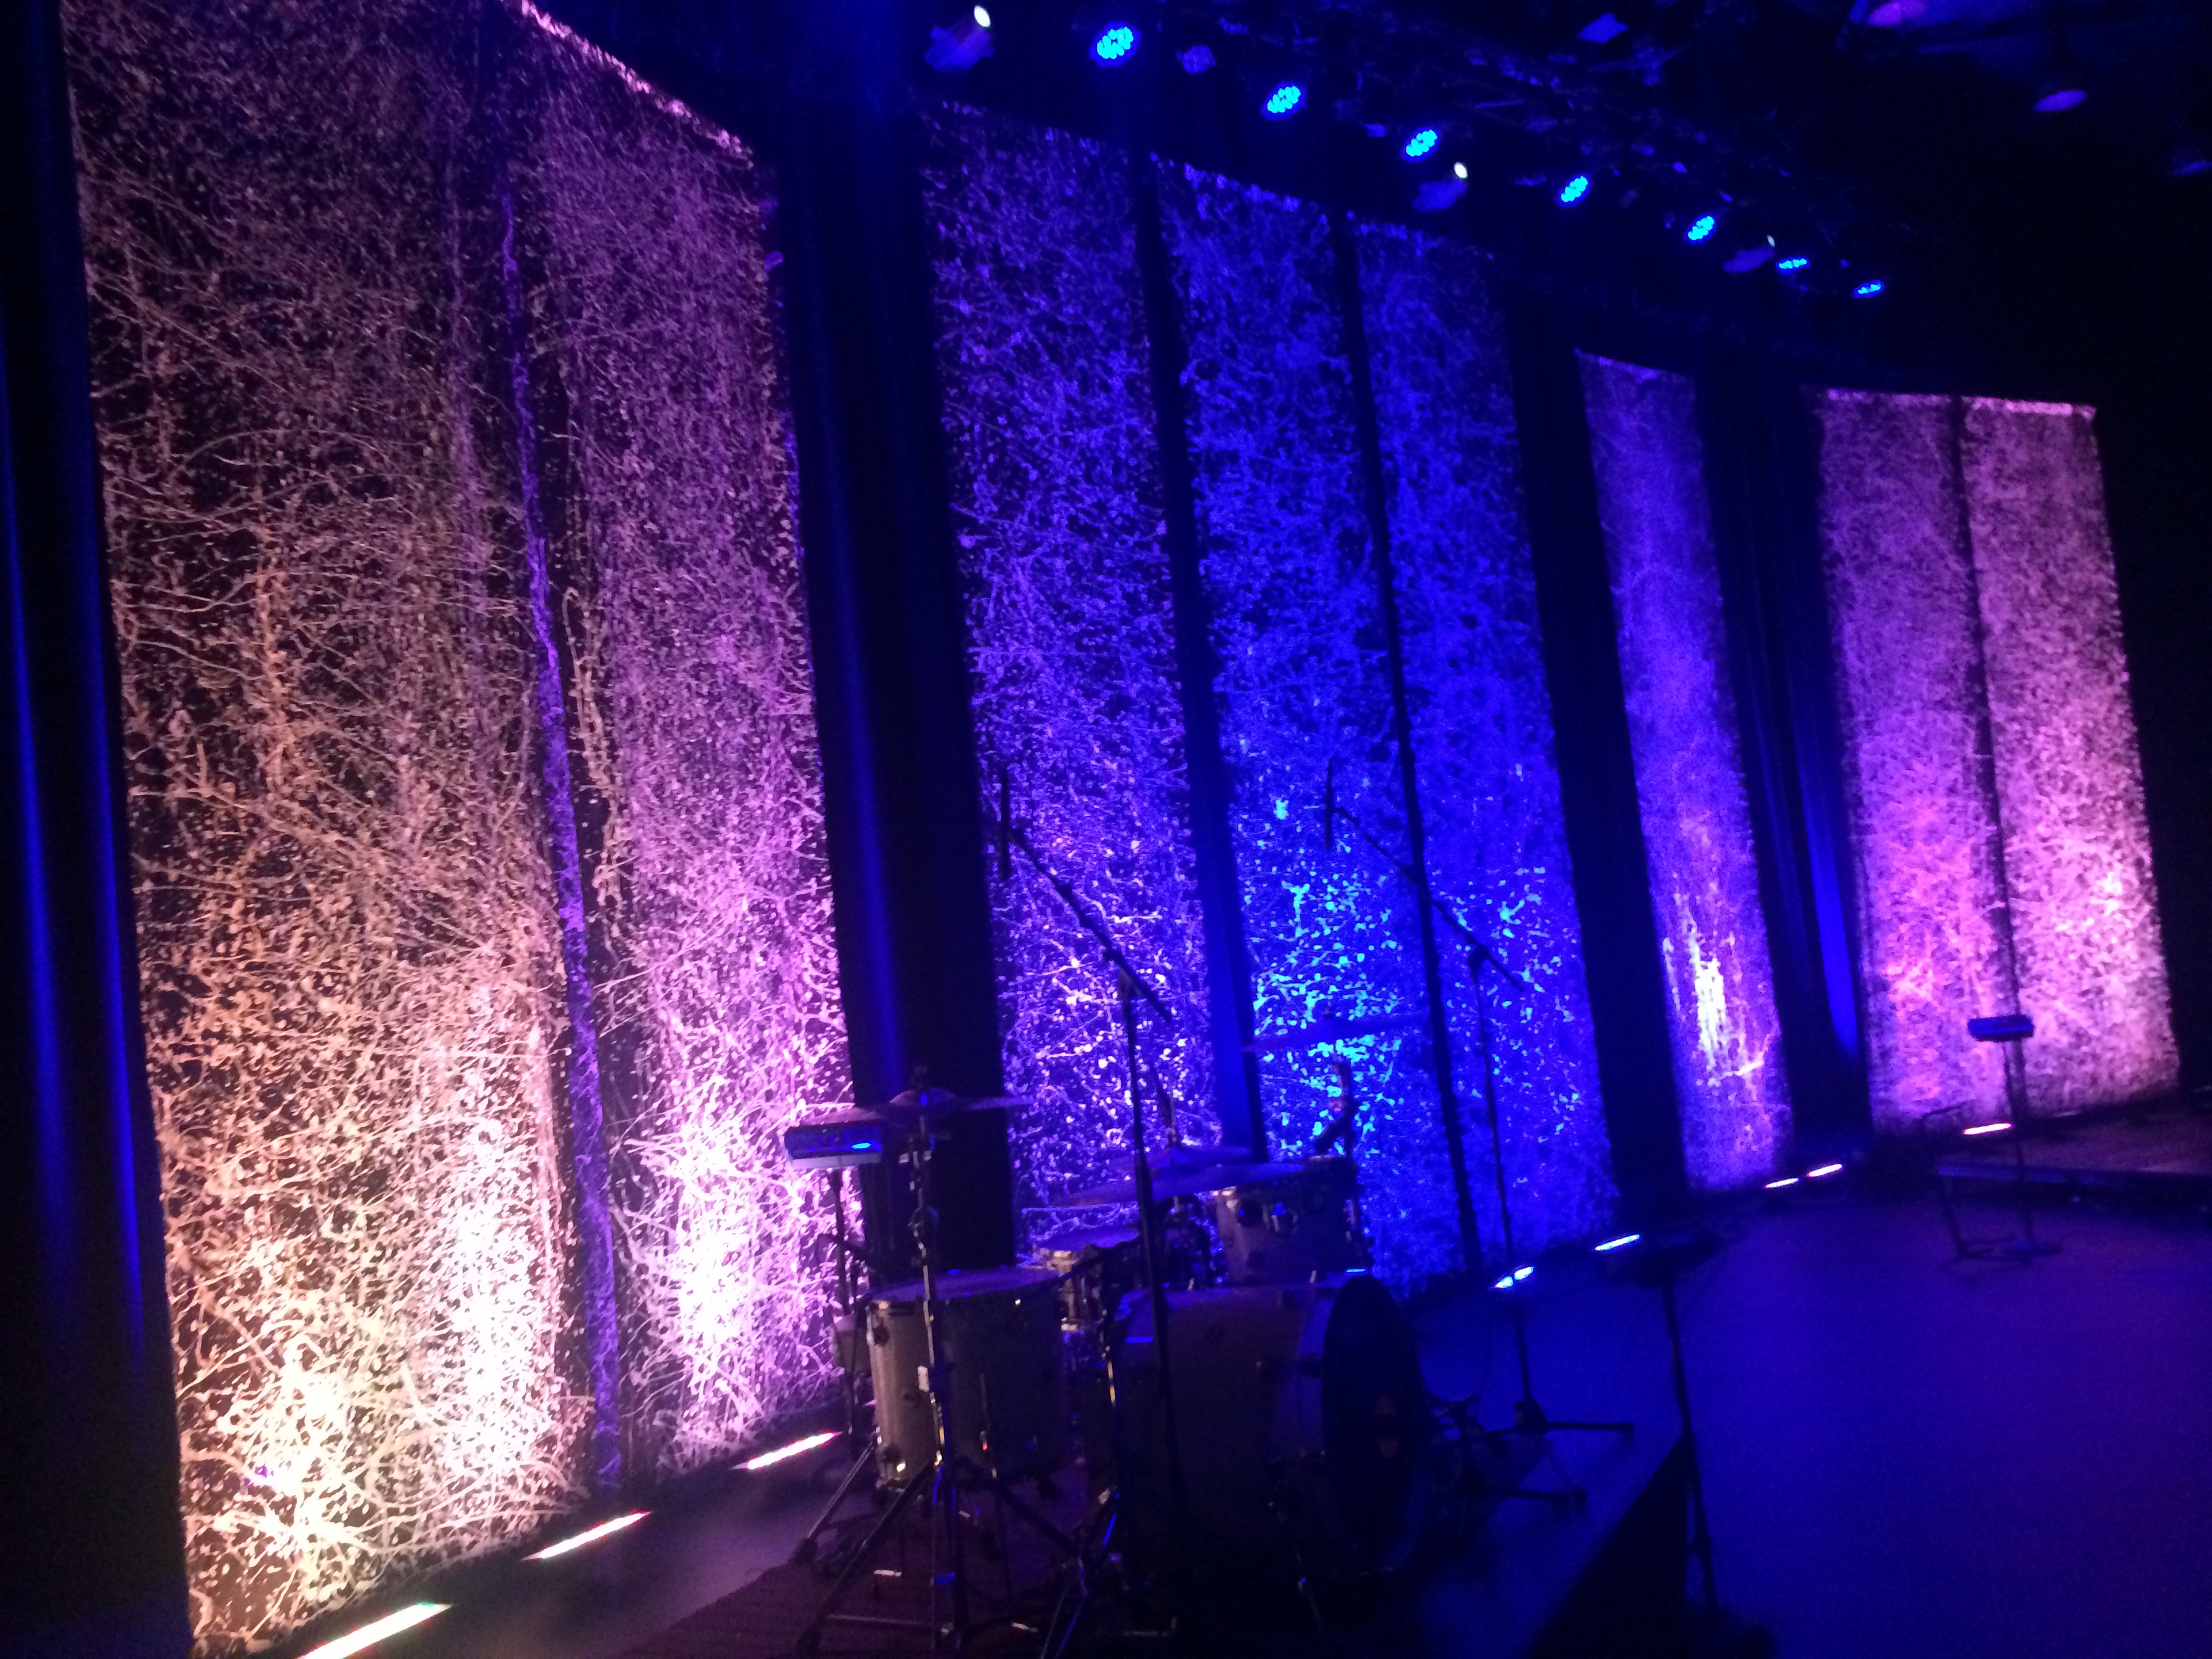 Stage Set Splatter Backdrops The Crossing Creative